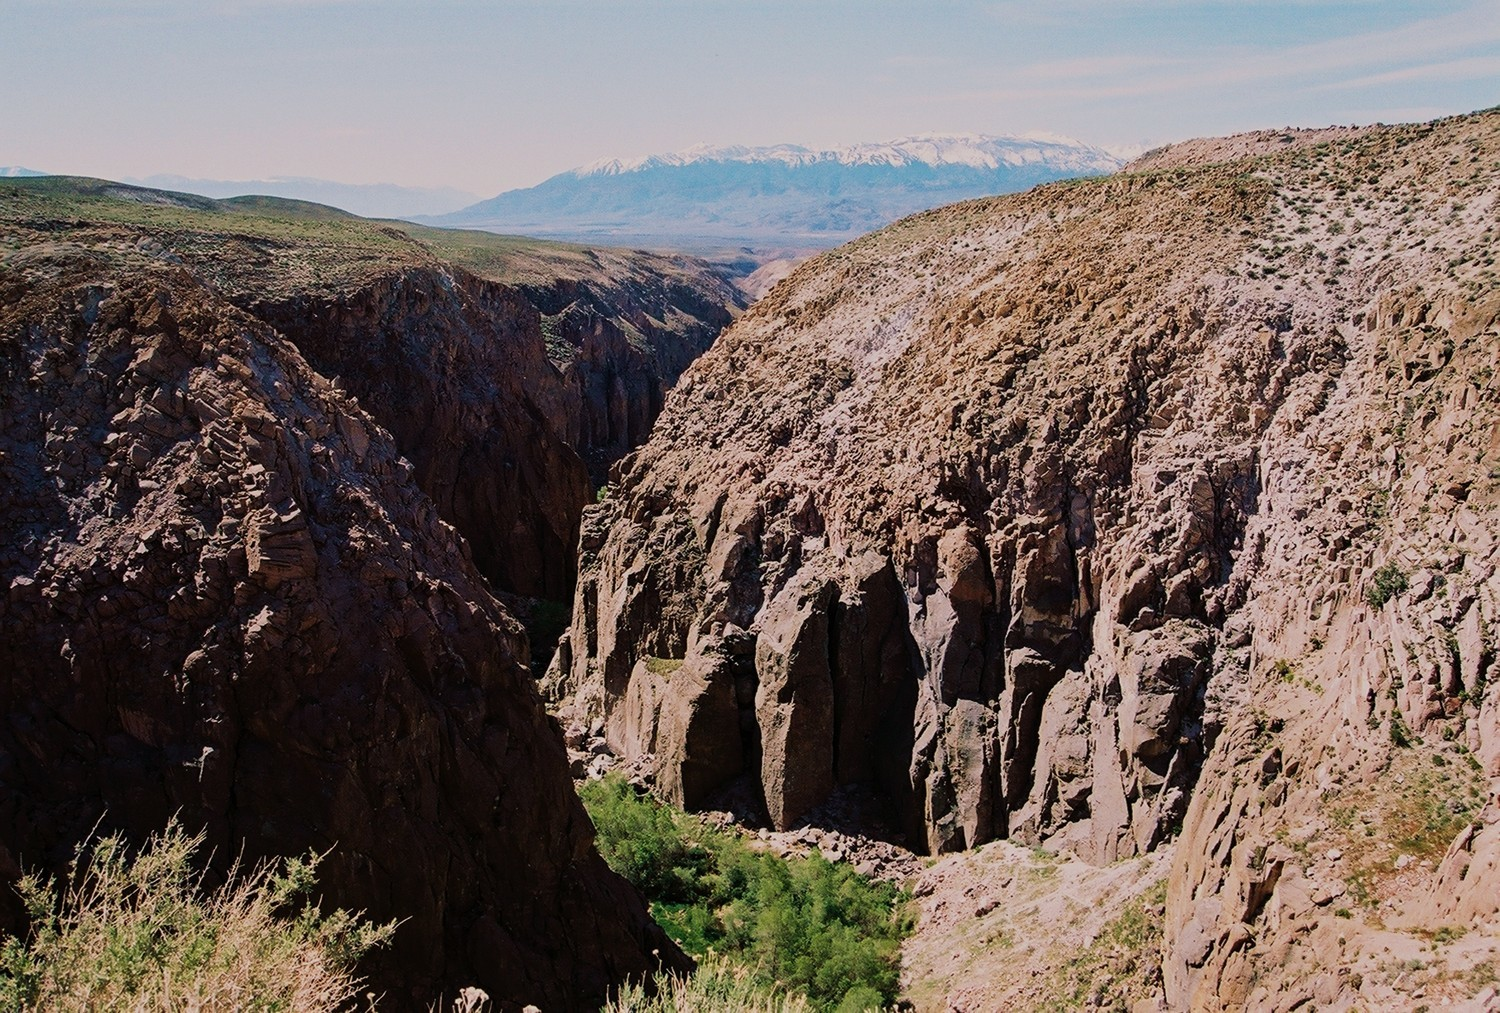 Upper Owens River Gorge, Bishop, CA